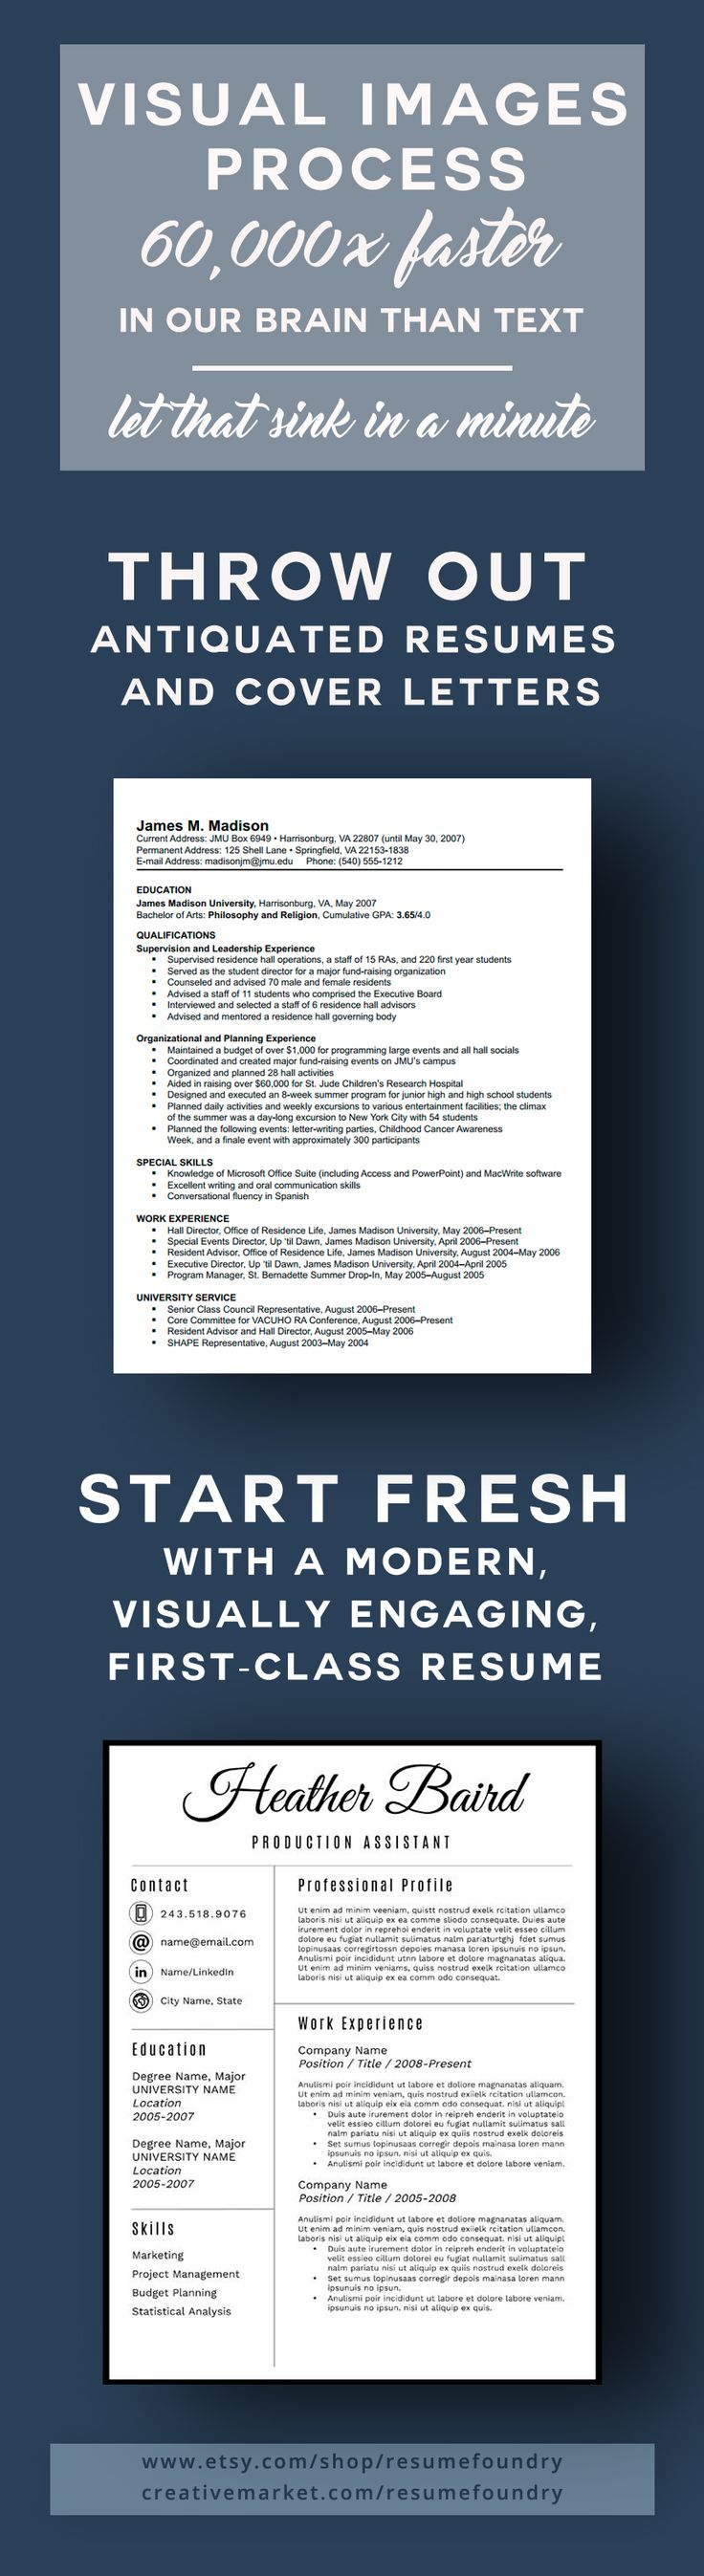 how to present your resume%0A Take advantage of the fact that visual images process faster than text   make your resume visually engaging